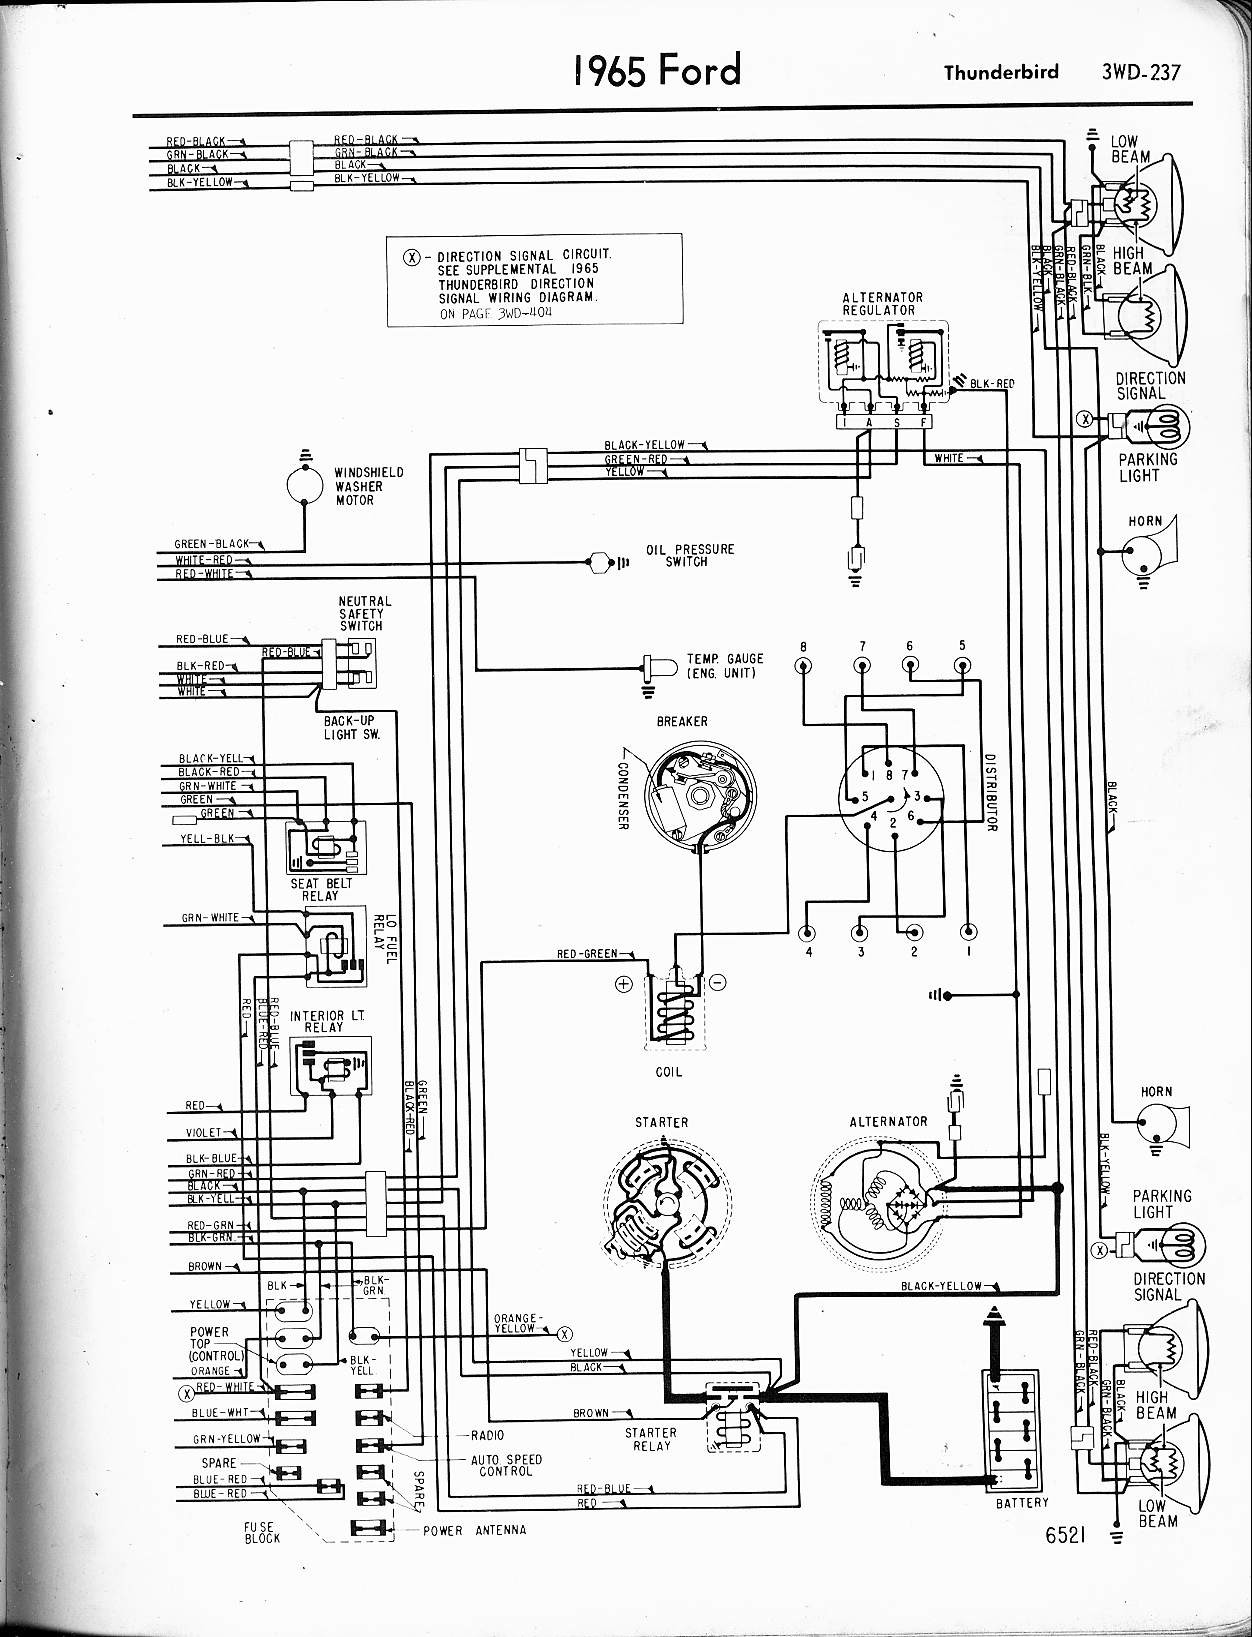 2000 F250 Tail Light Wiring Diagram Wrg 7916] 1965 Econoline Wiring Diagram Of 2000 F250 Tail Light Wiring Diagram